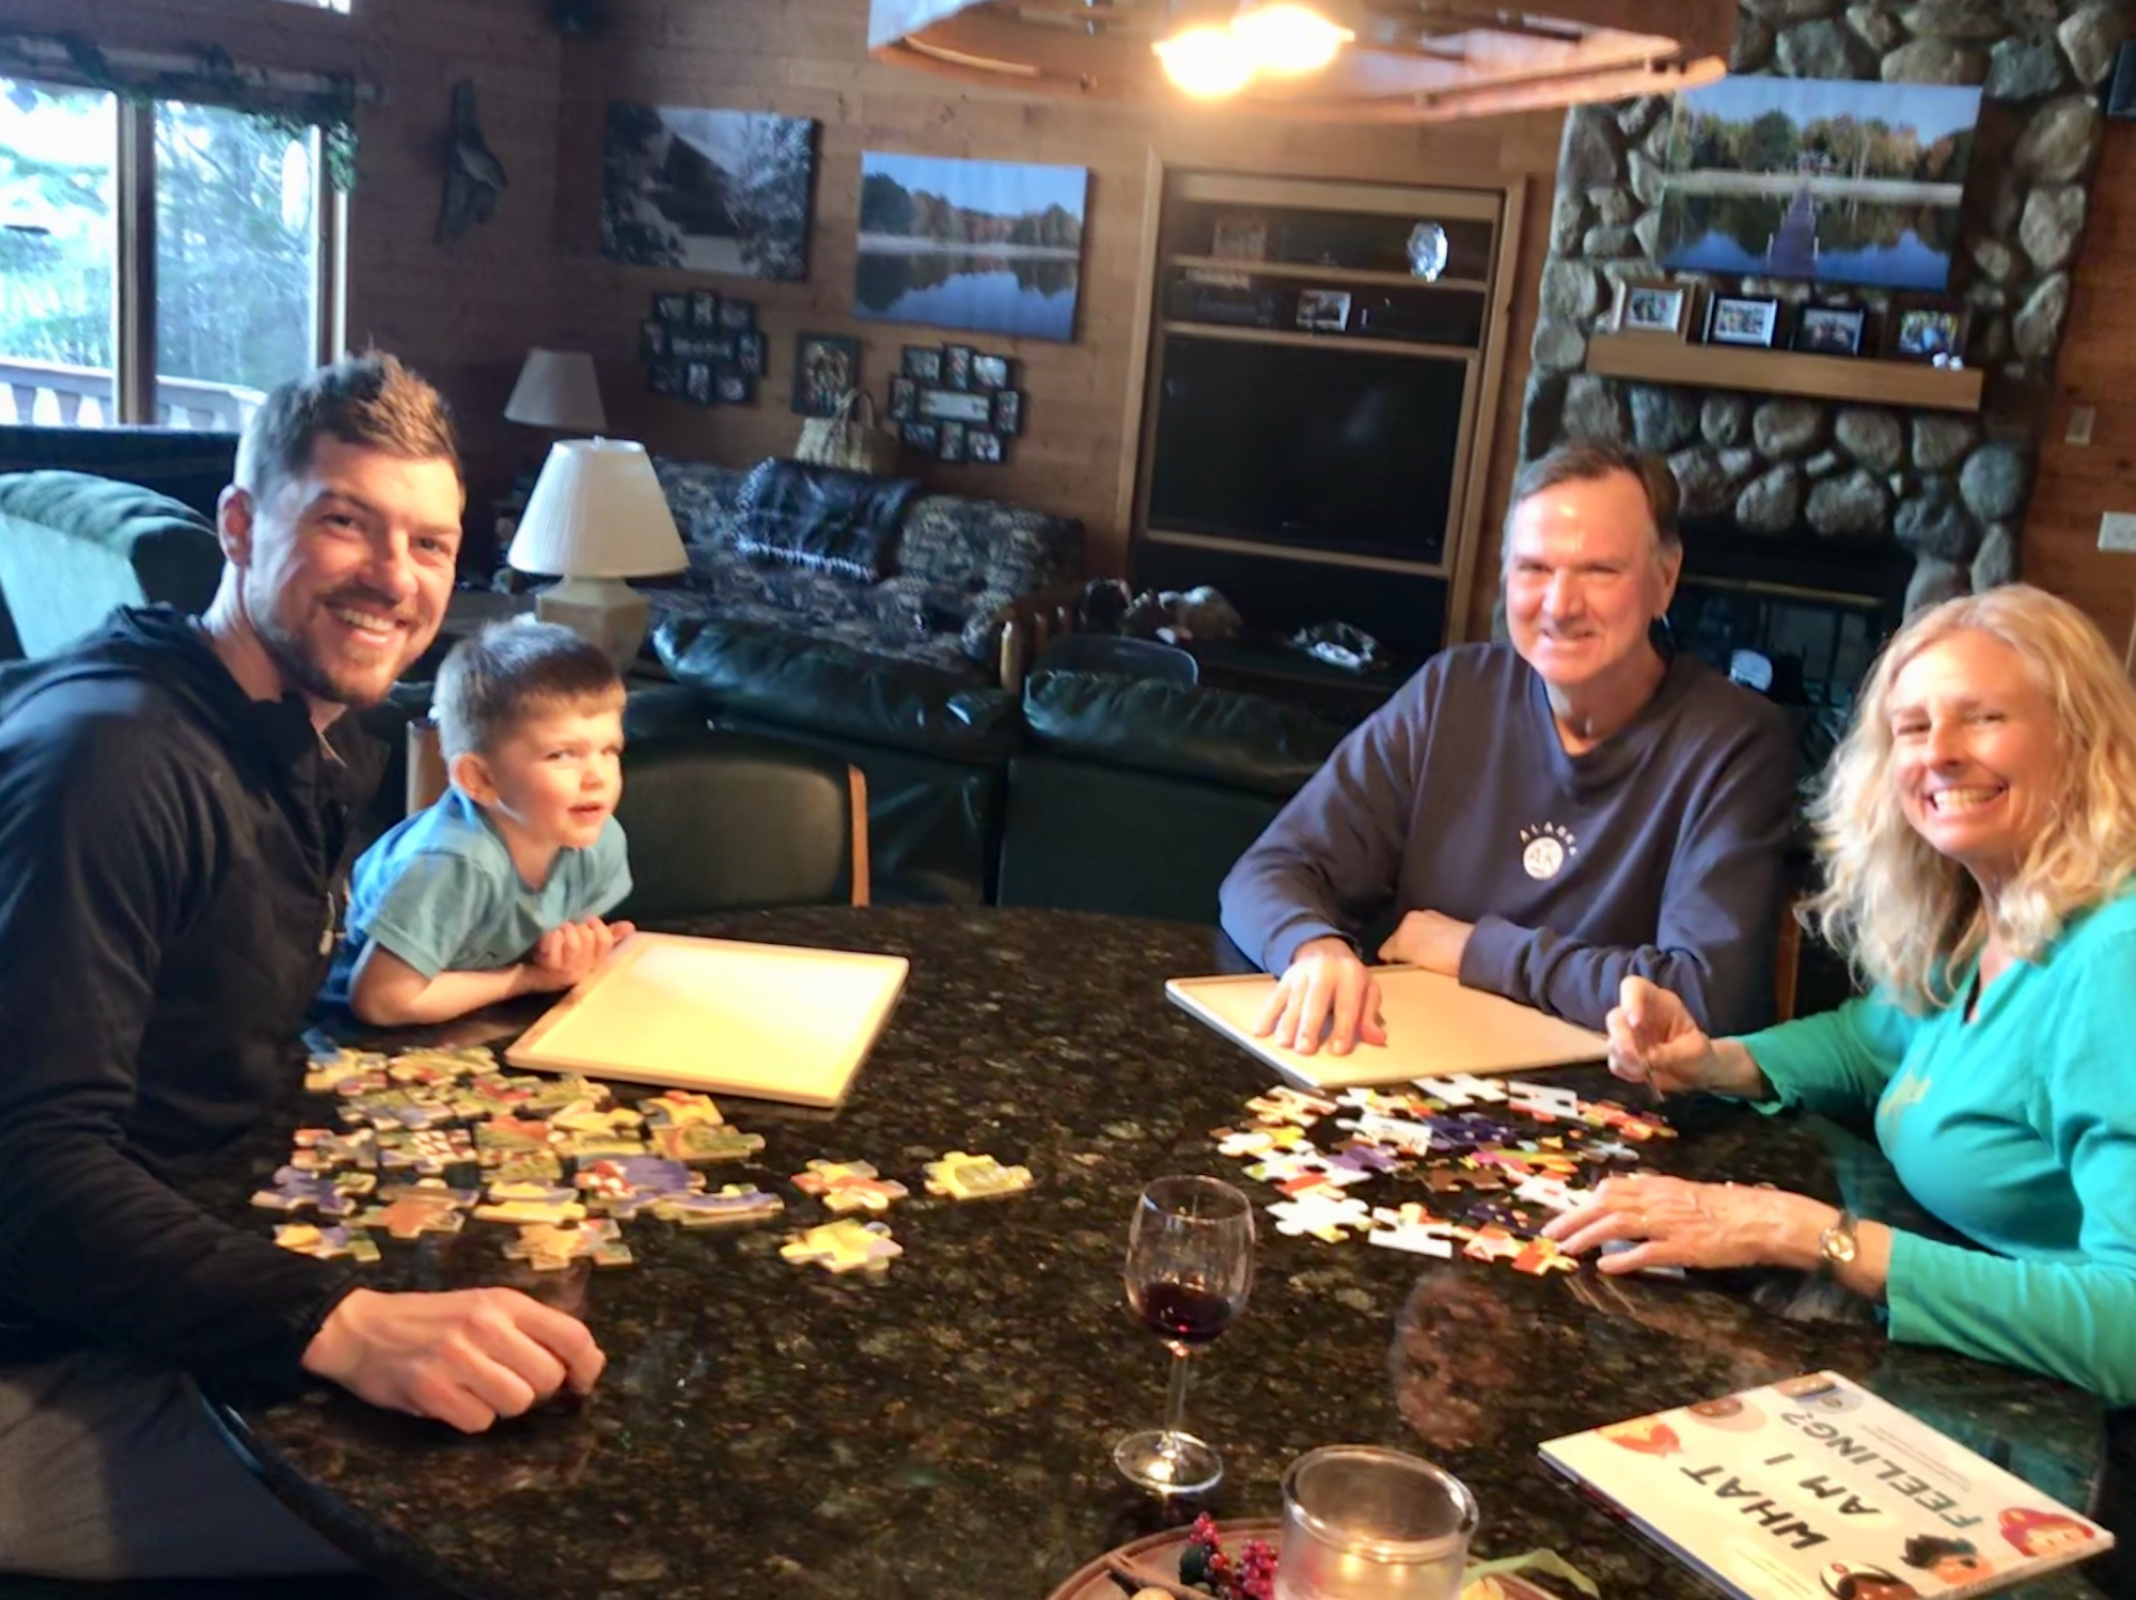 Colden races Papa and Nana with puzzles